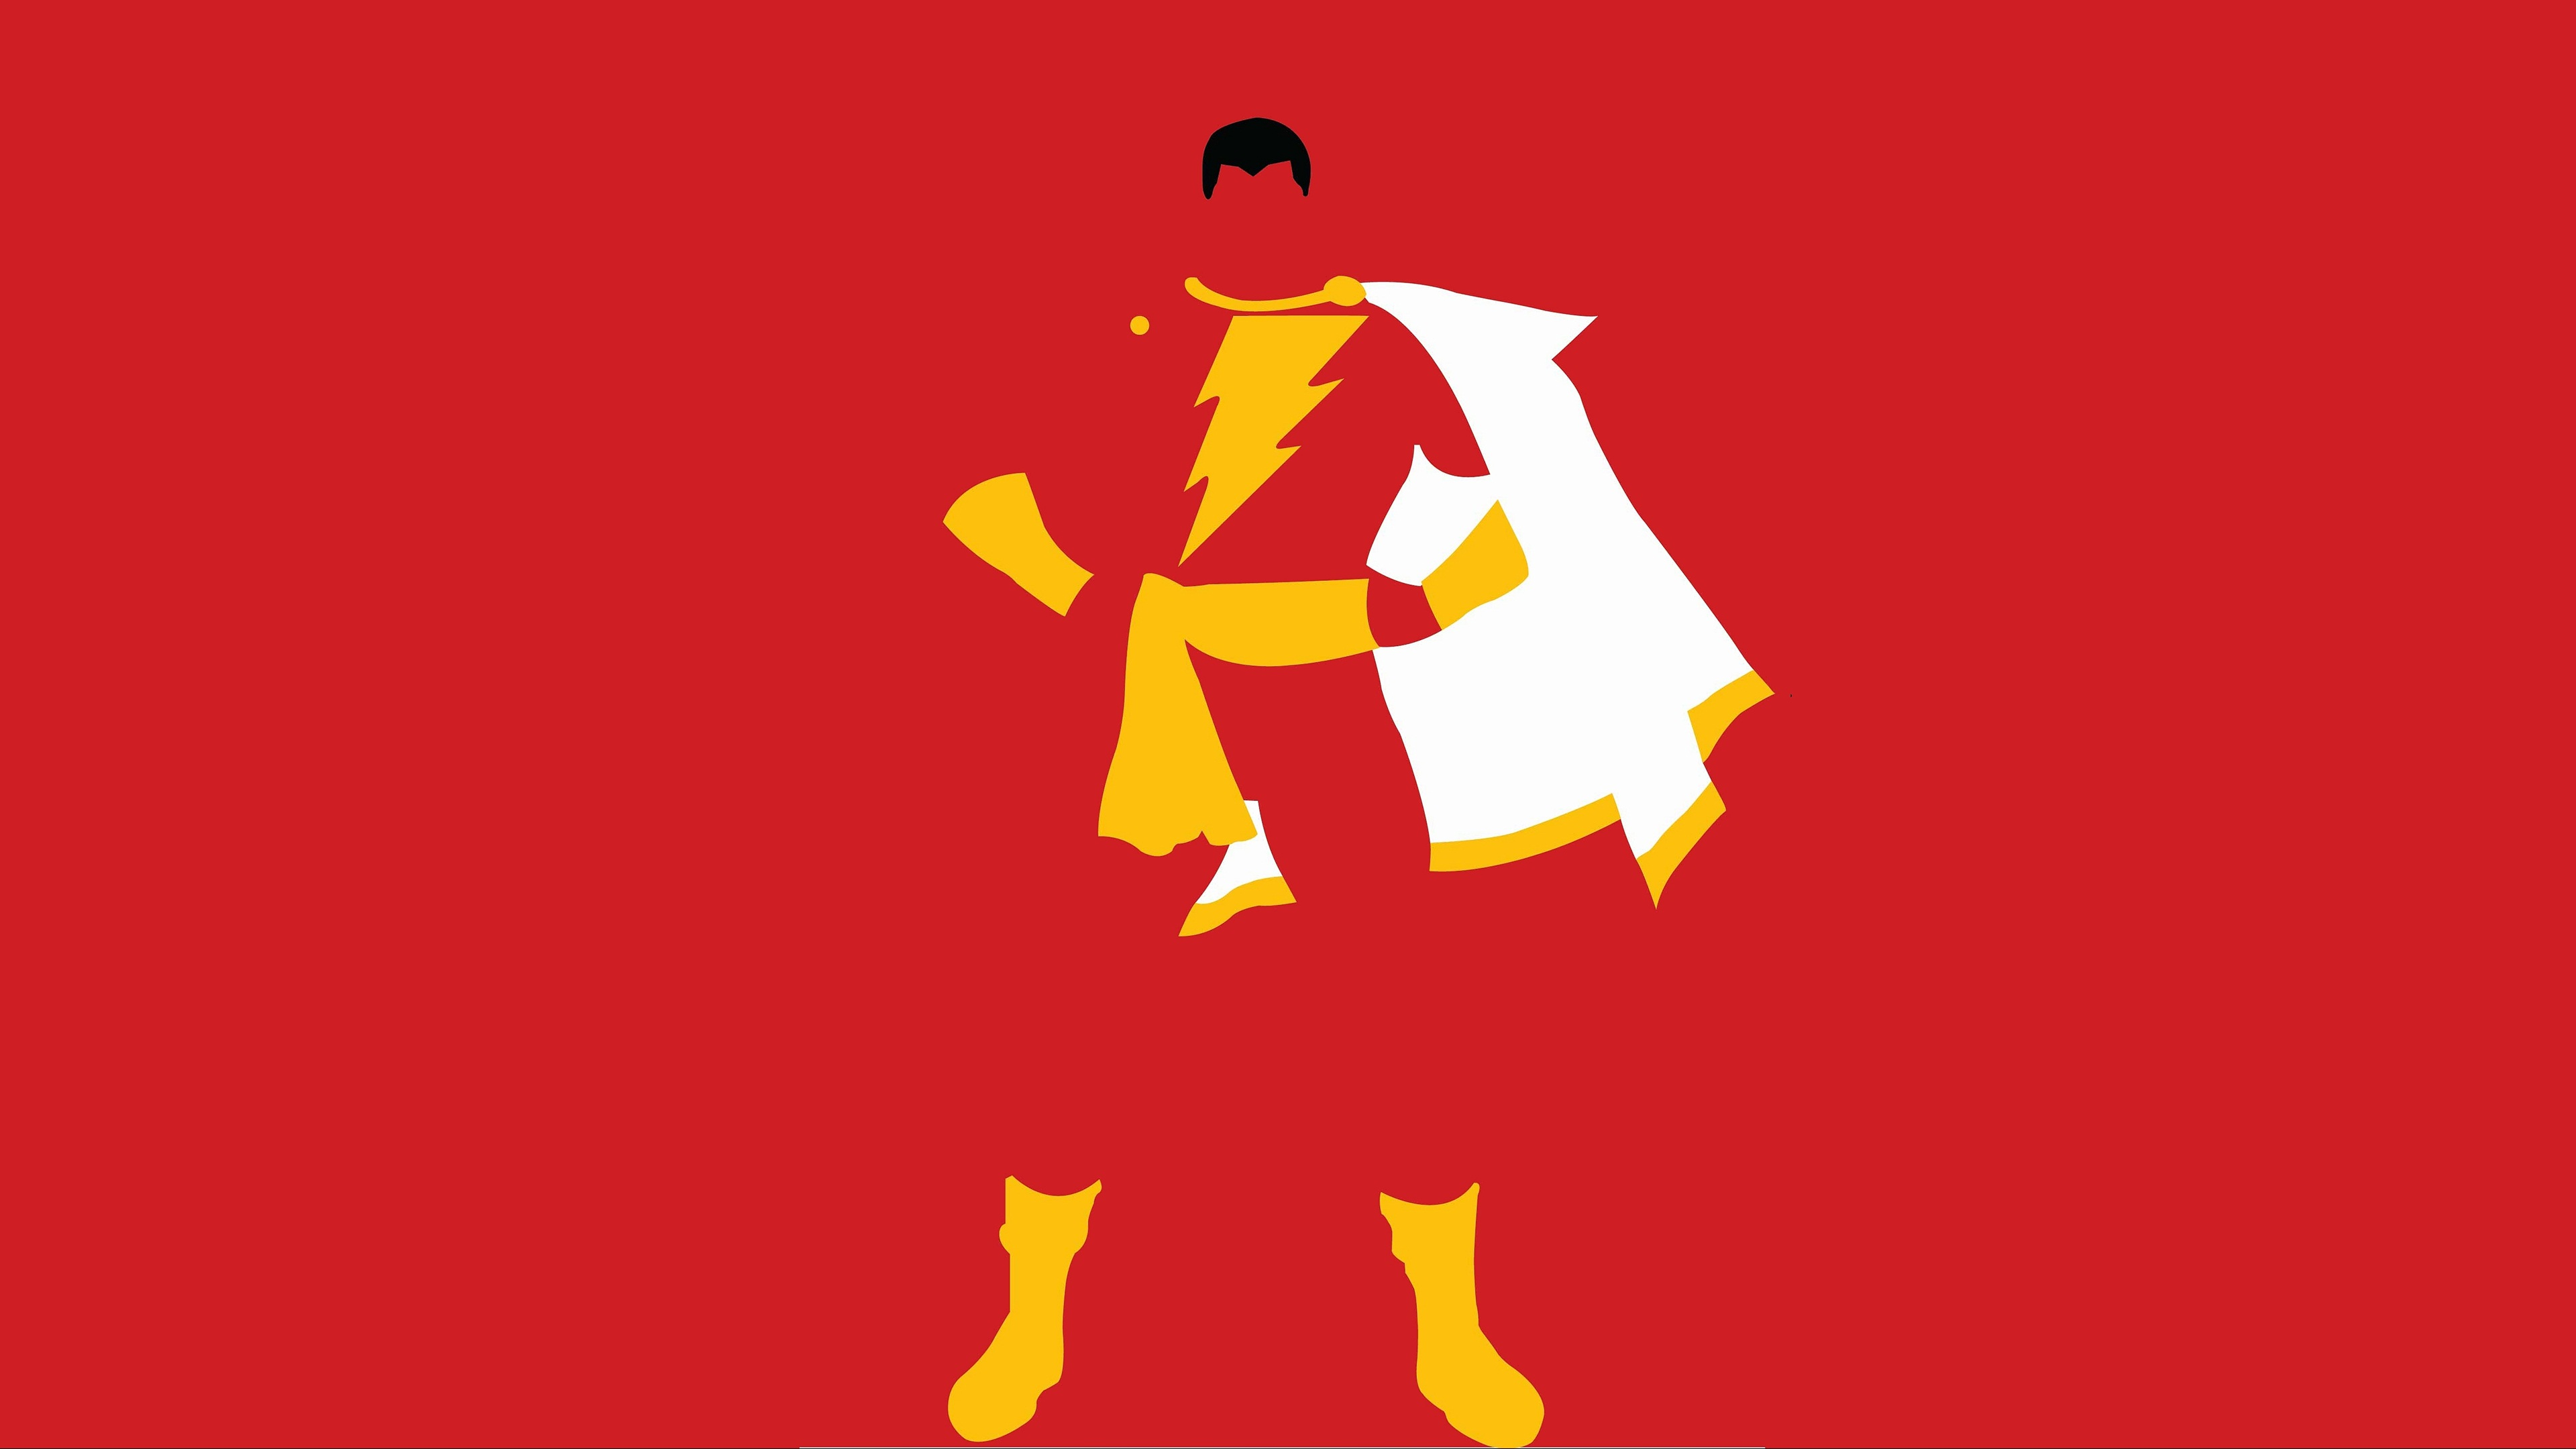 3840x2160 - Shazam! Wallpapers 15